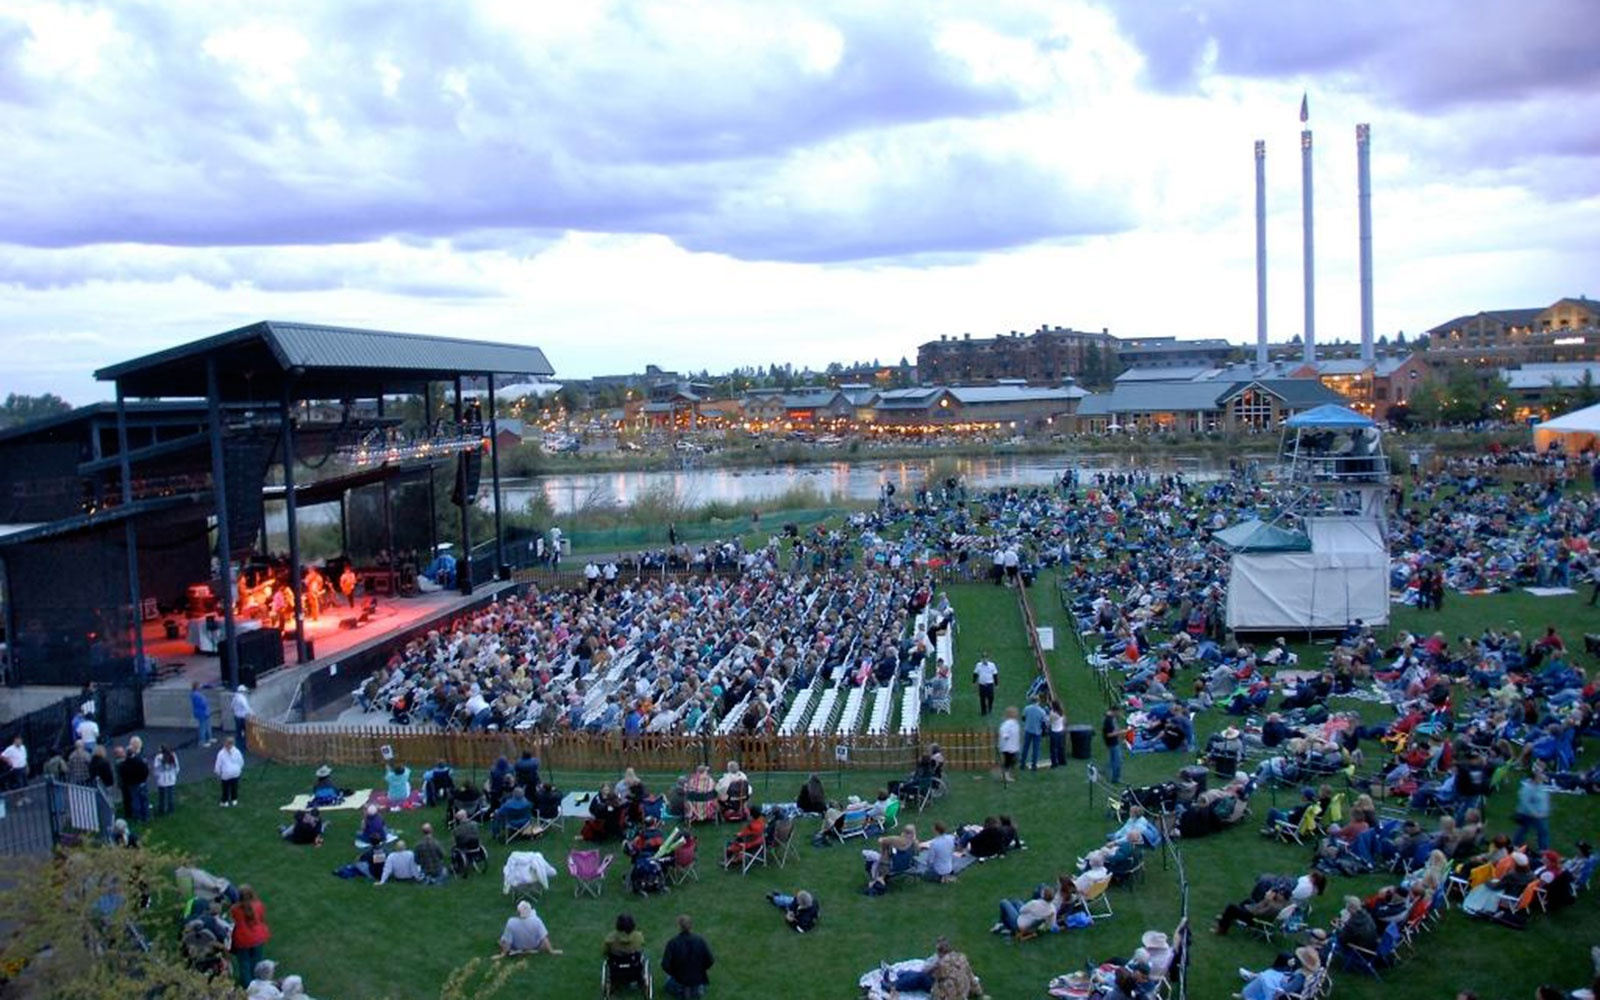 Les Schwab Amphitheater, Bend, OR